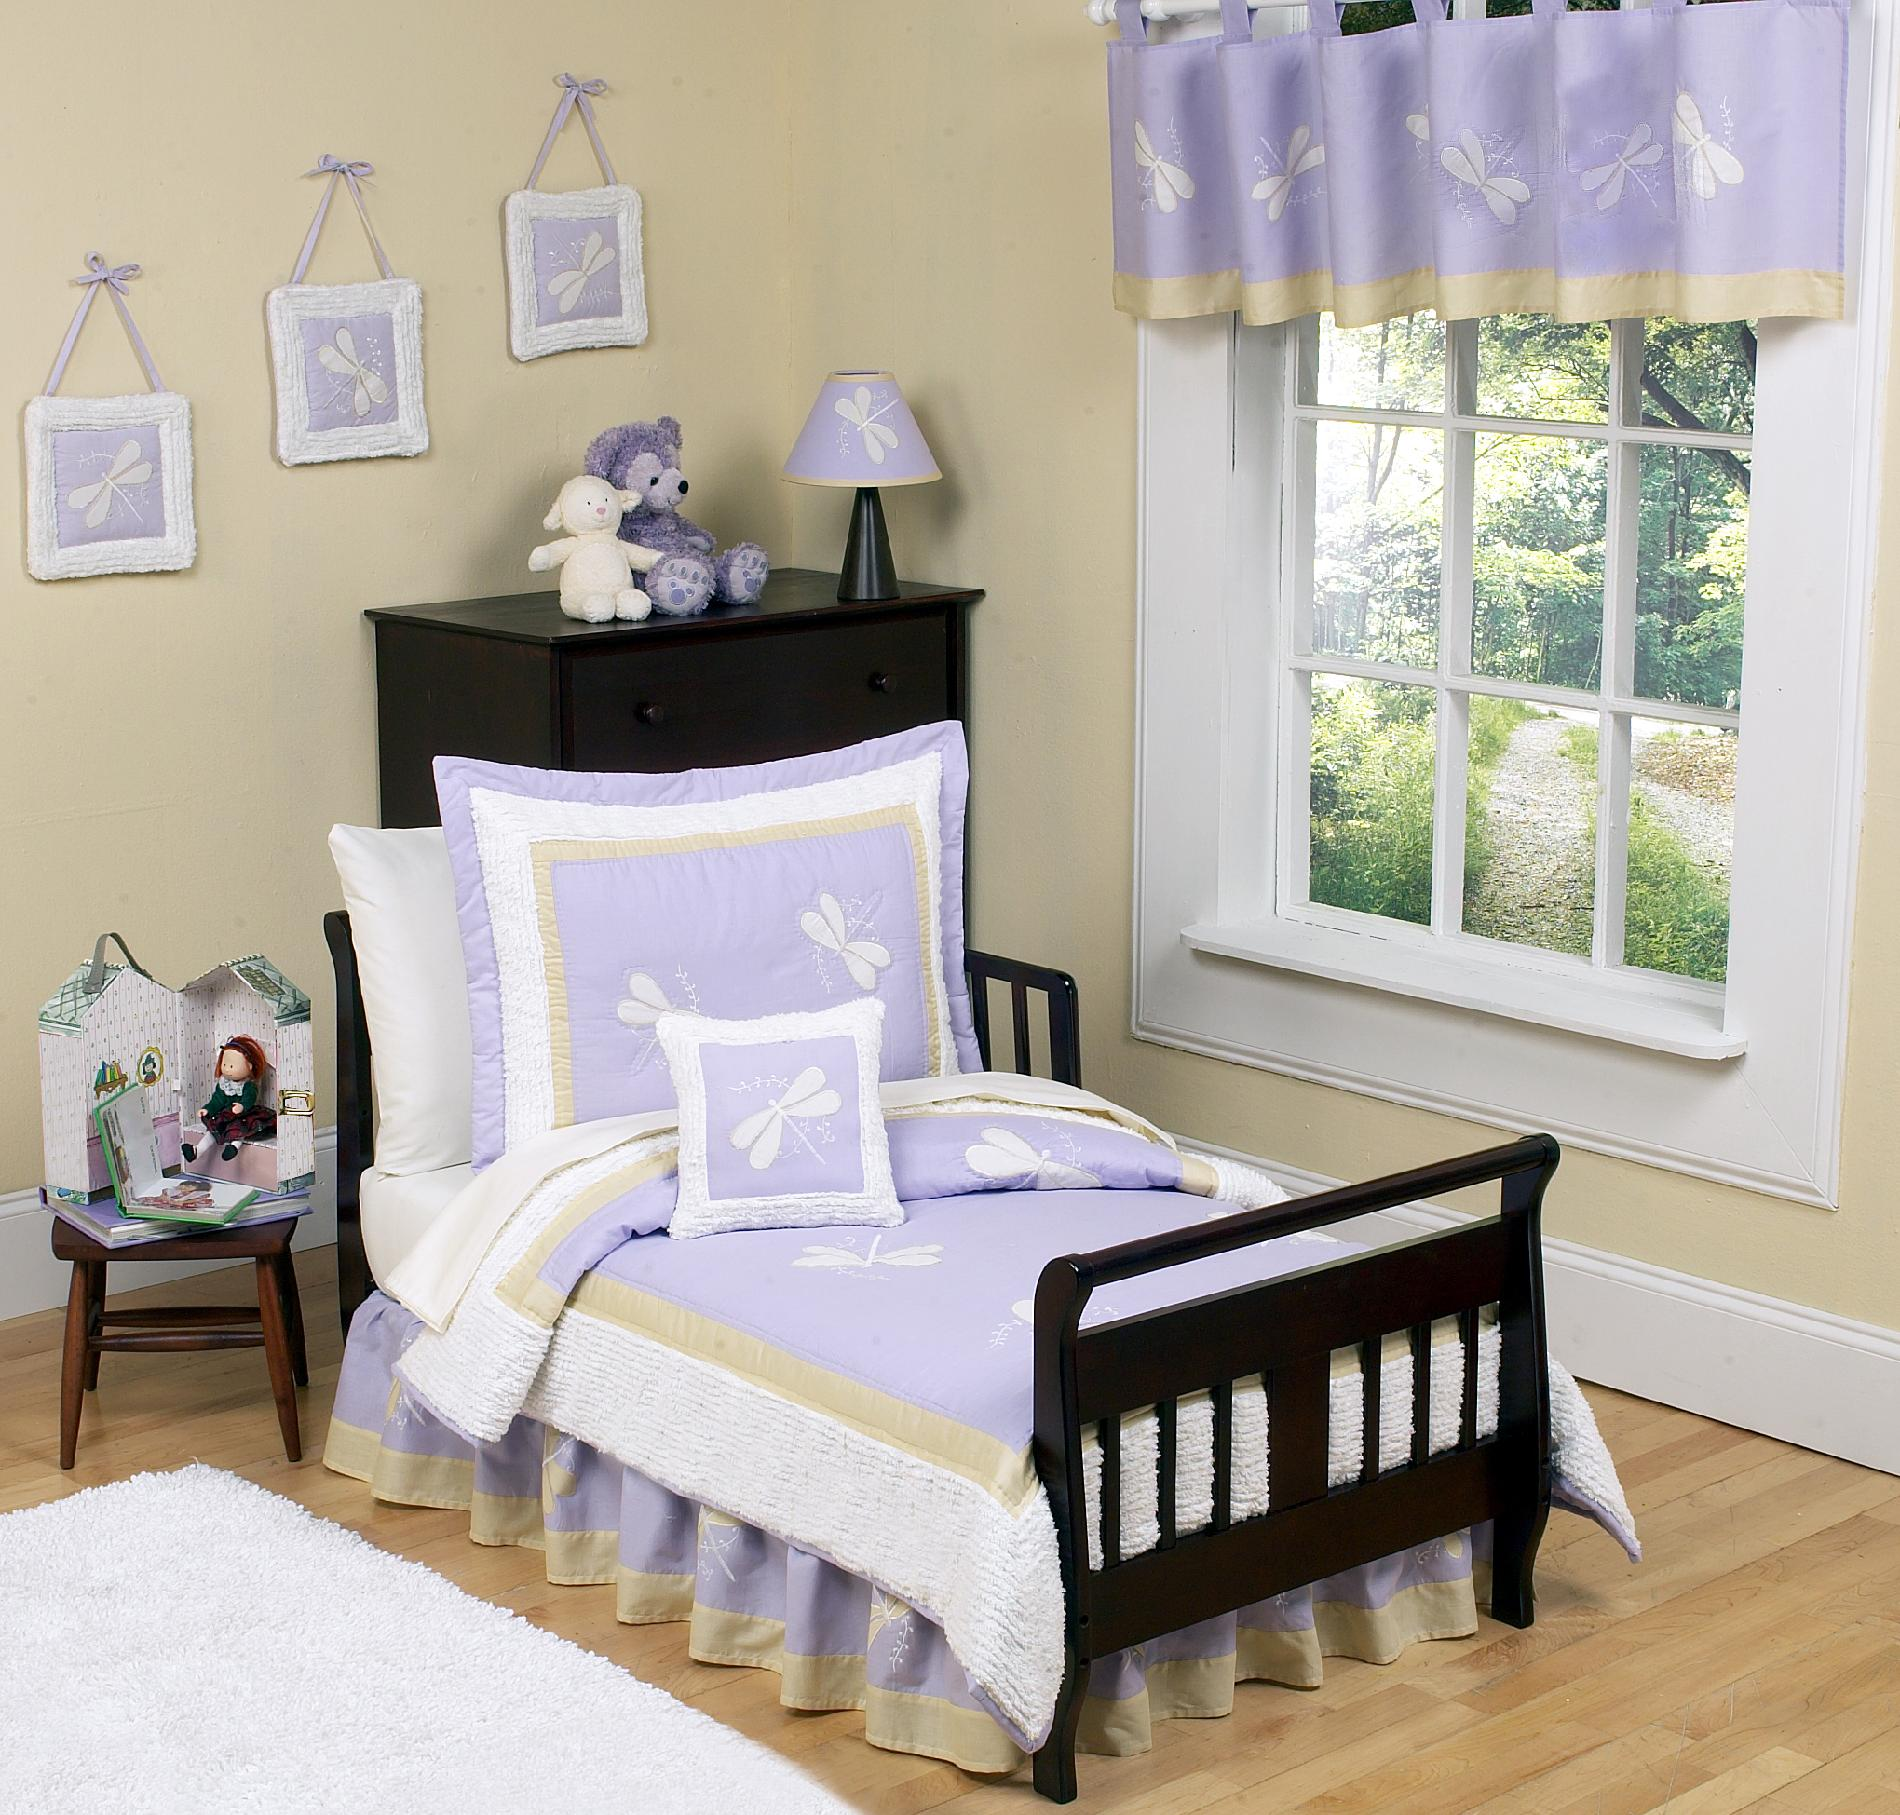 Sweet Jojo Designs Purple Dragonfly Dreams Collection 5pc Toddler Bedding Set